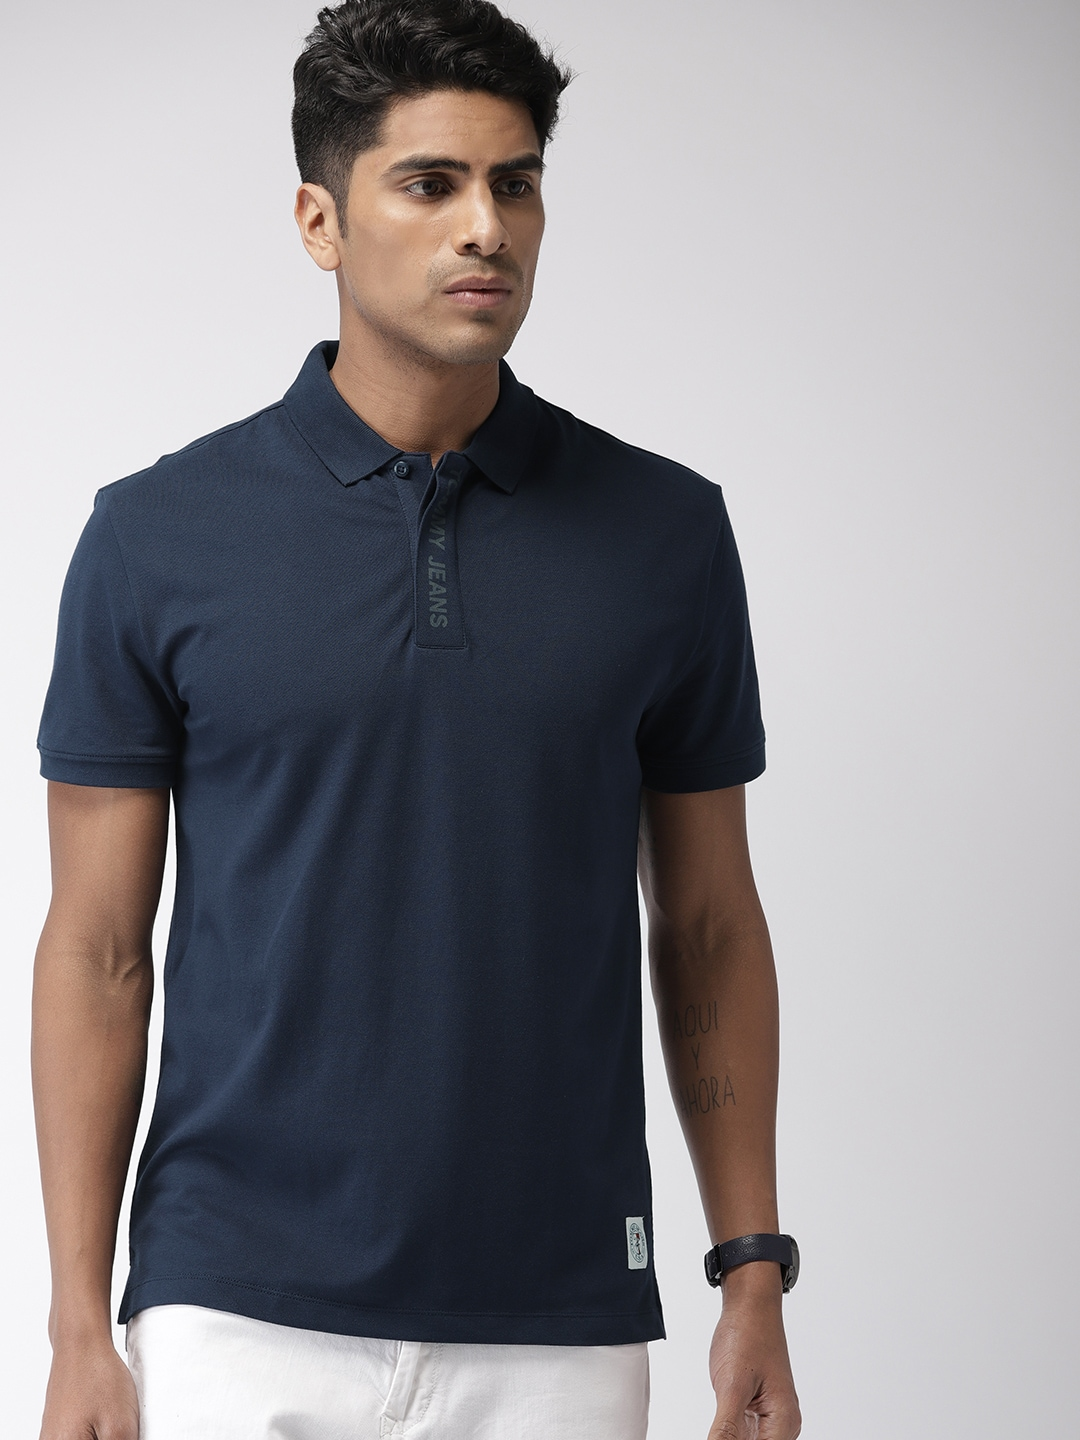 6a1c265a5 Collar T-shirts - Buy Collared T-shirts Online